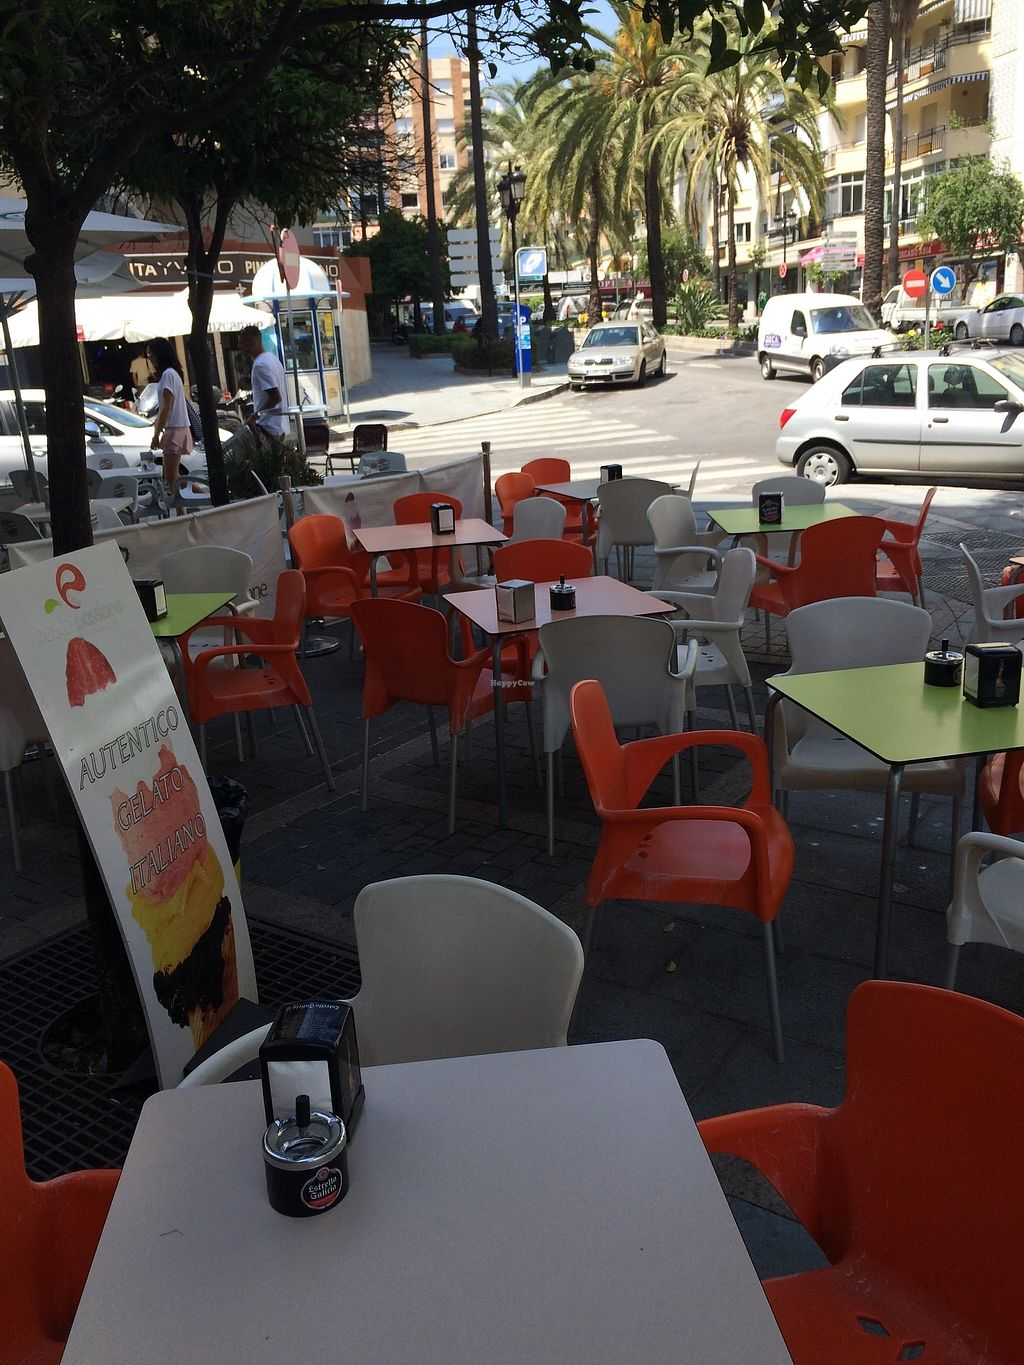 """Photo of Fresca Passione Heladeria  by <a href=""""/members/profile/pauletam"""">pauletam</a> <br/>Outside tables <br/> June 23, 2017  - <a href='/contact/abuse/image/94479/272484'>Report</a>"""